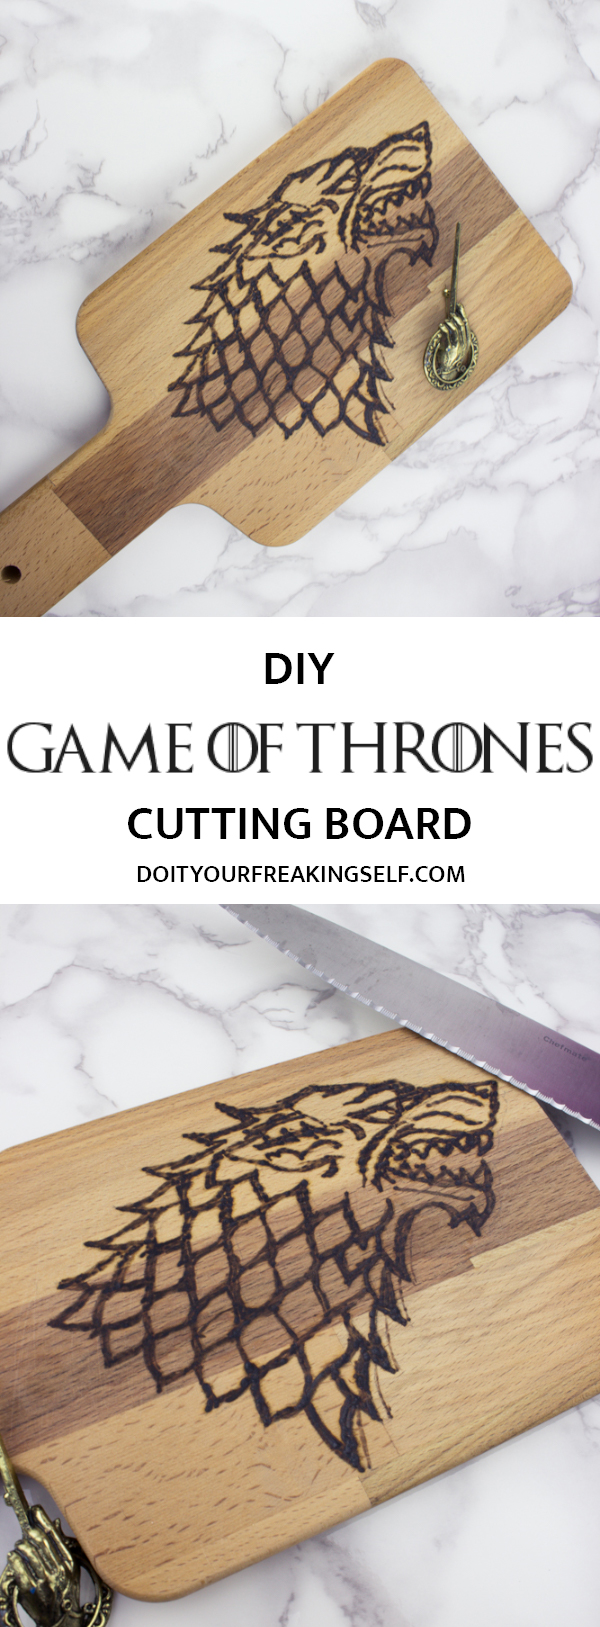 Create your own wood burned Game of Thrones House Stark Cutting board with this easy tutorial. If you've ever wanted to try wood burning, this is a fun project for Game of Thrones fans.